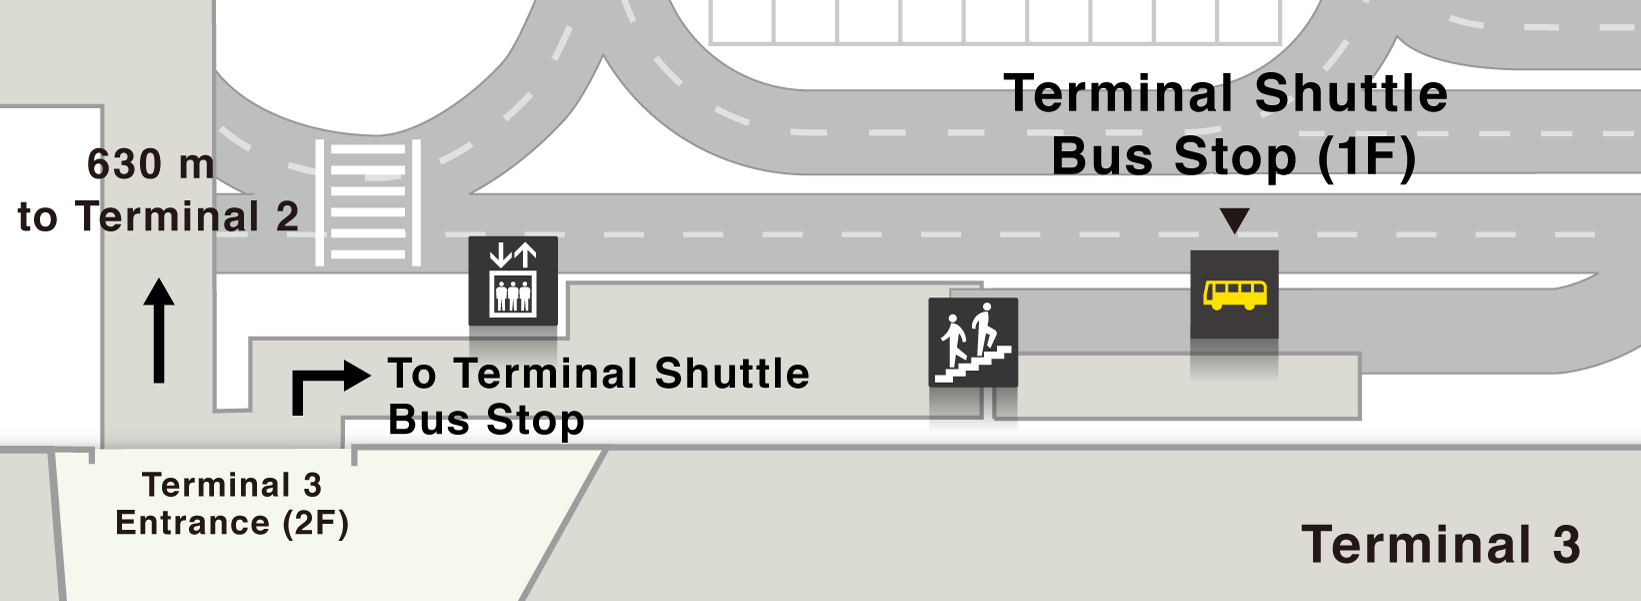 Map of terminal shuttle bus stops on the 1st floor of Terminal 3.